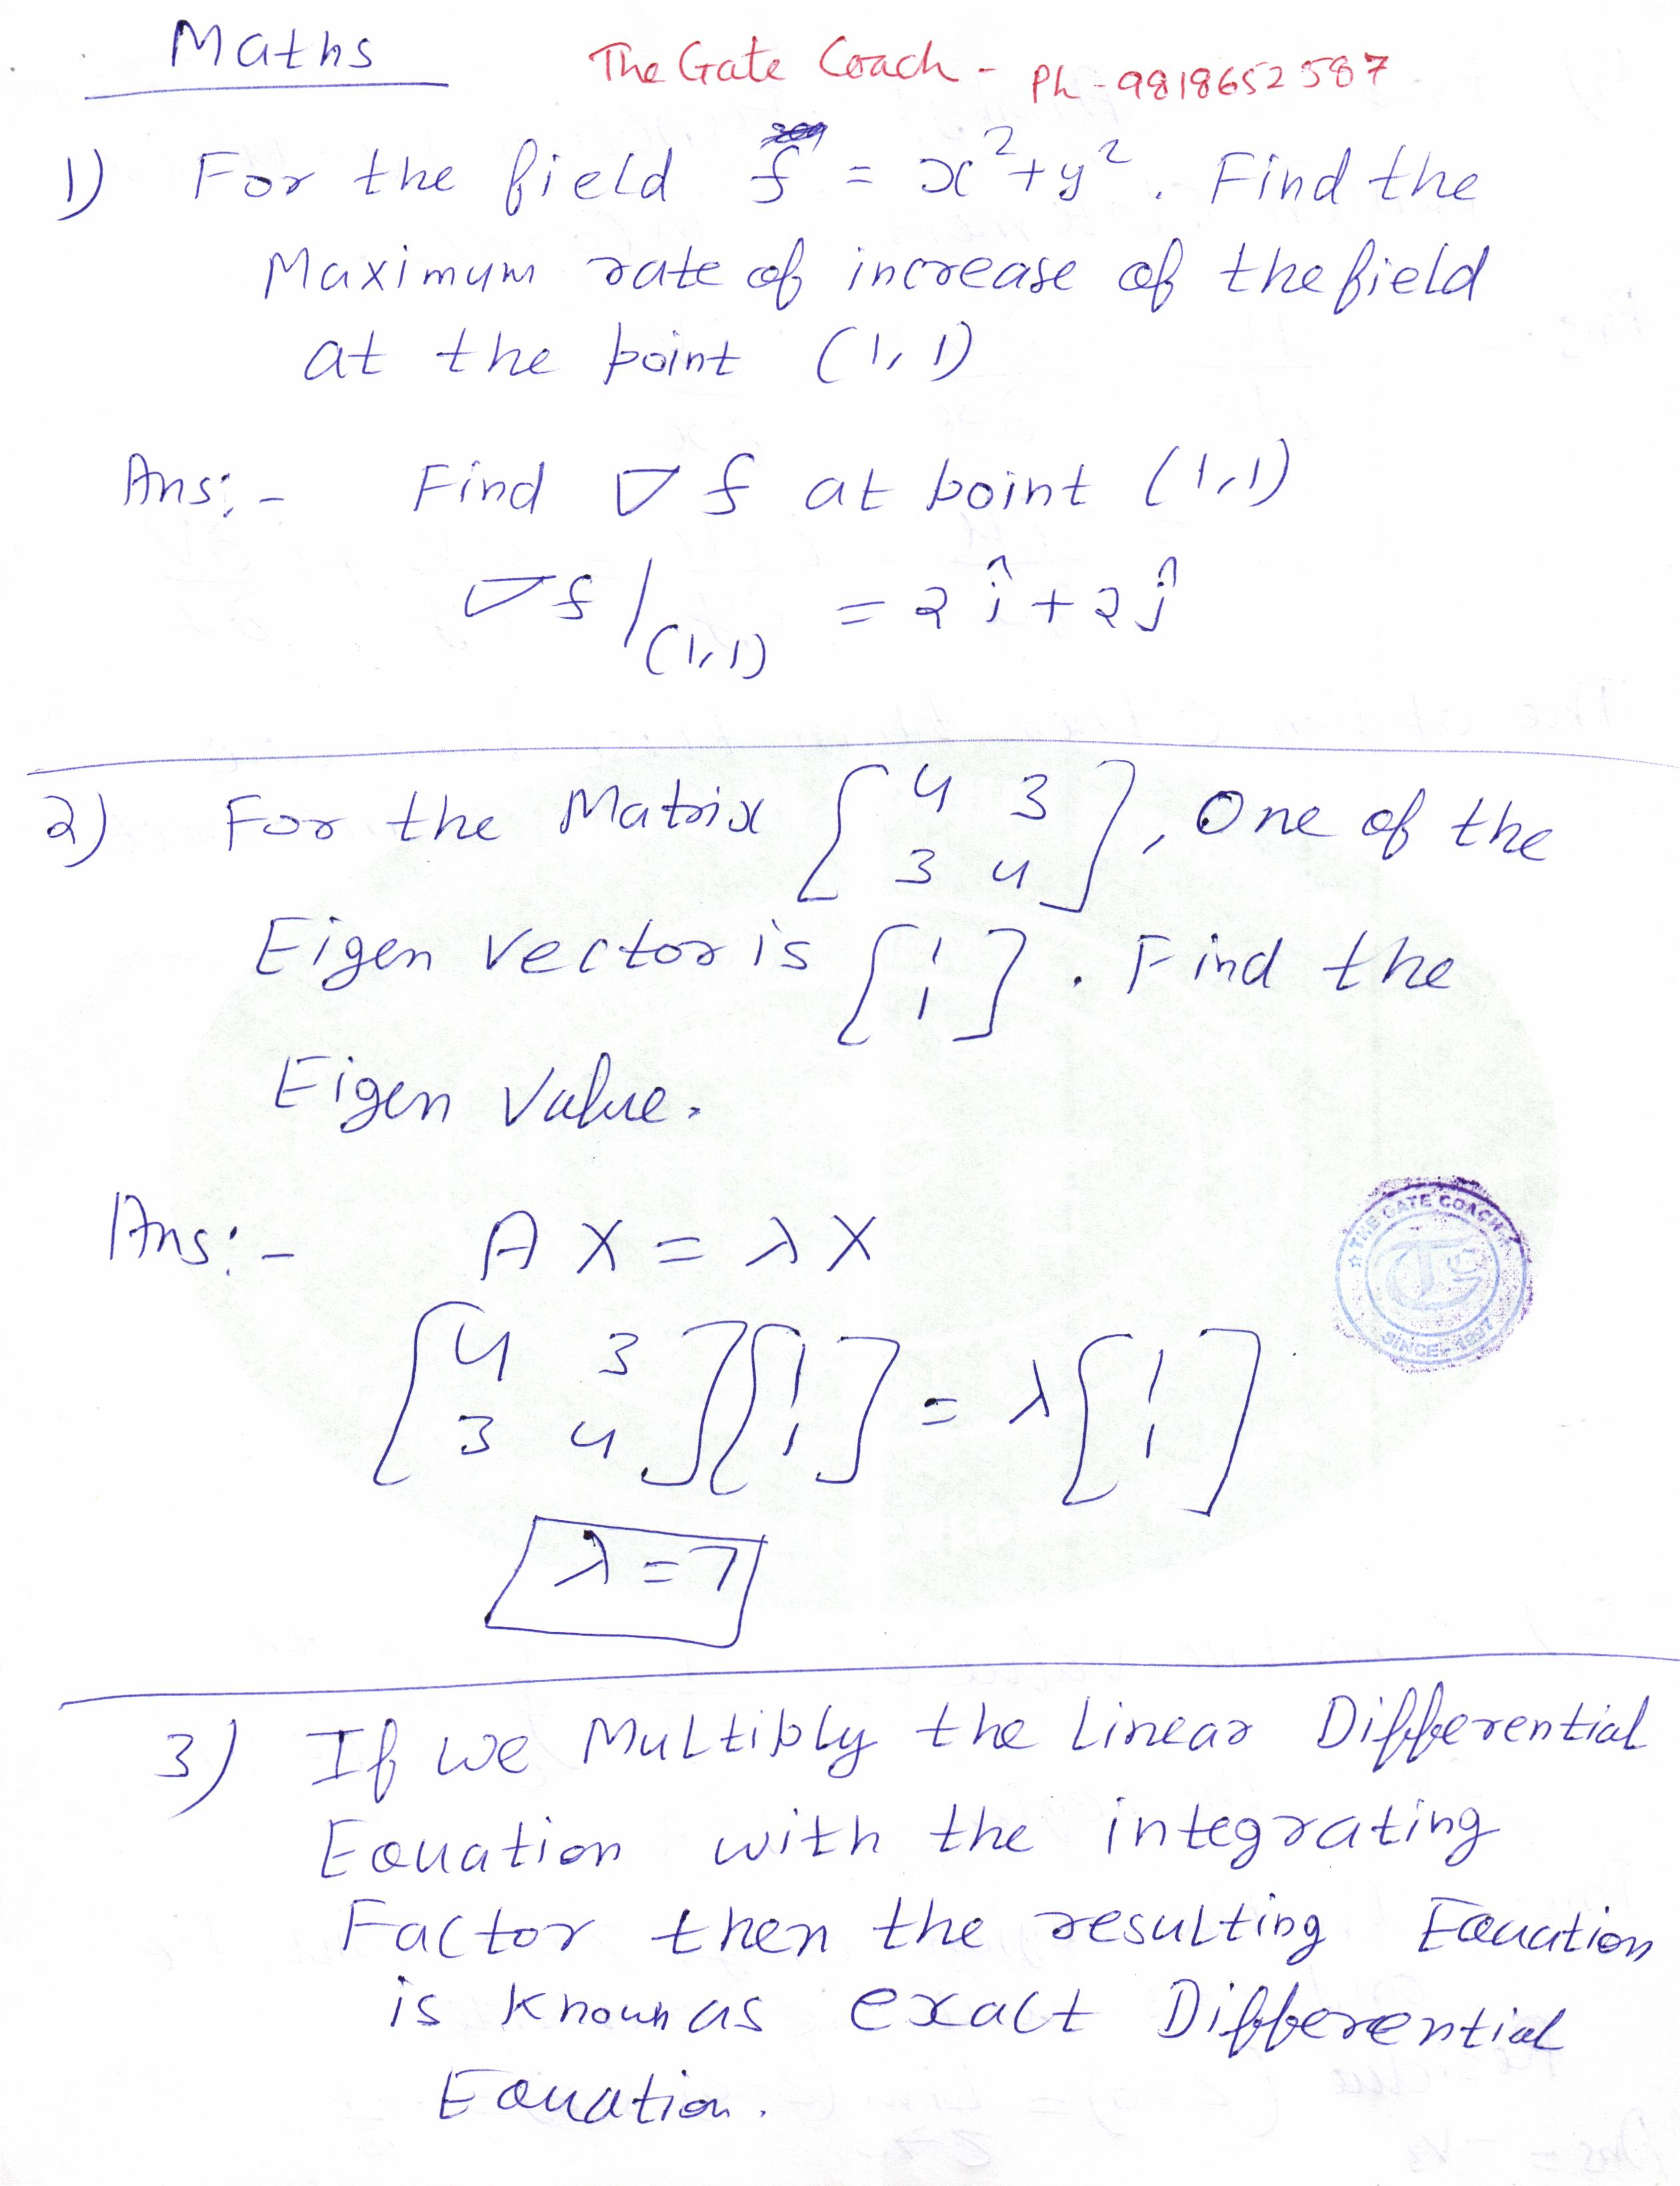 Solutions Mechanics For Engineers Dynamics Maths Gate Questions